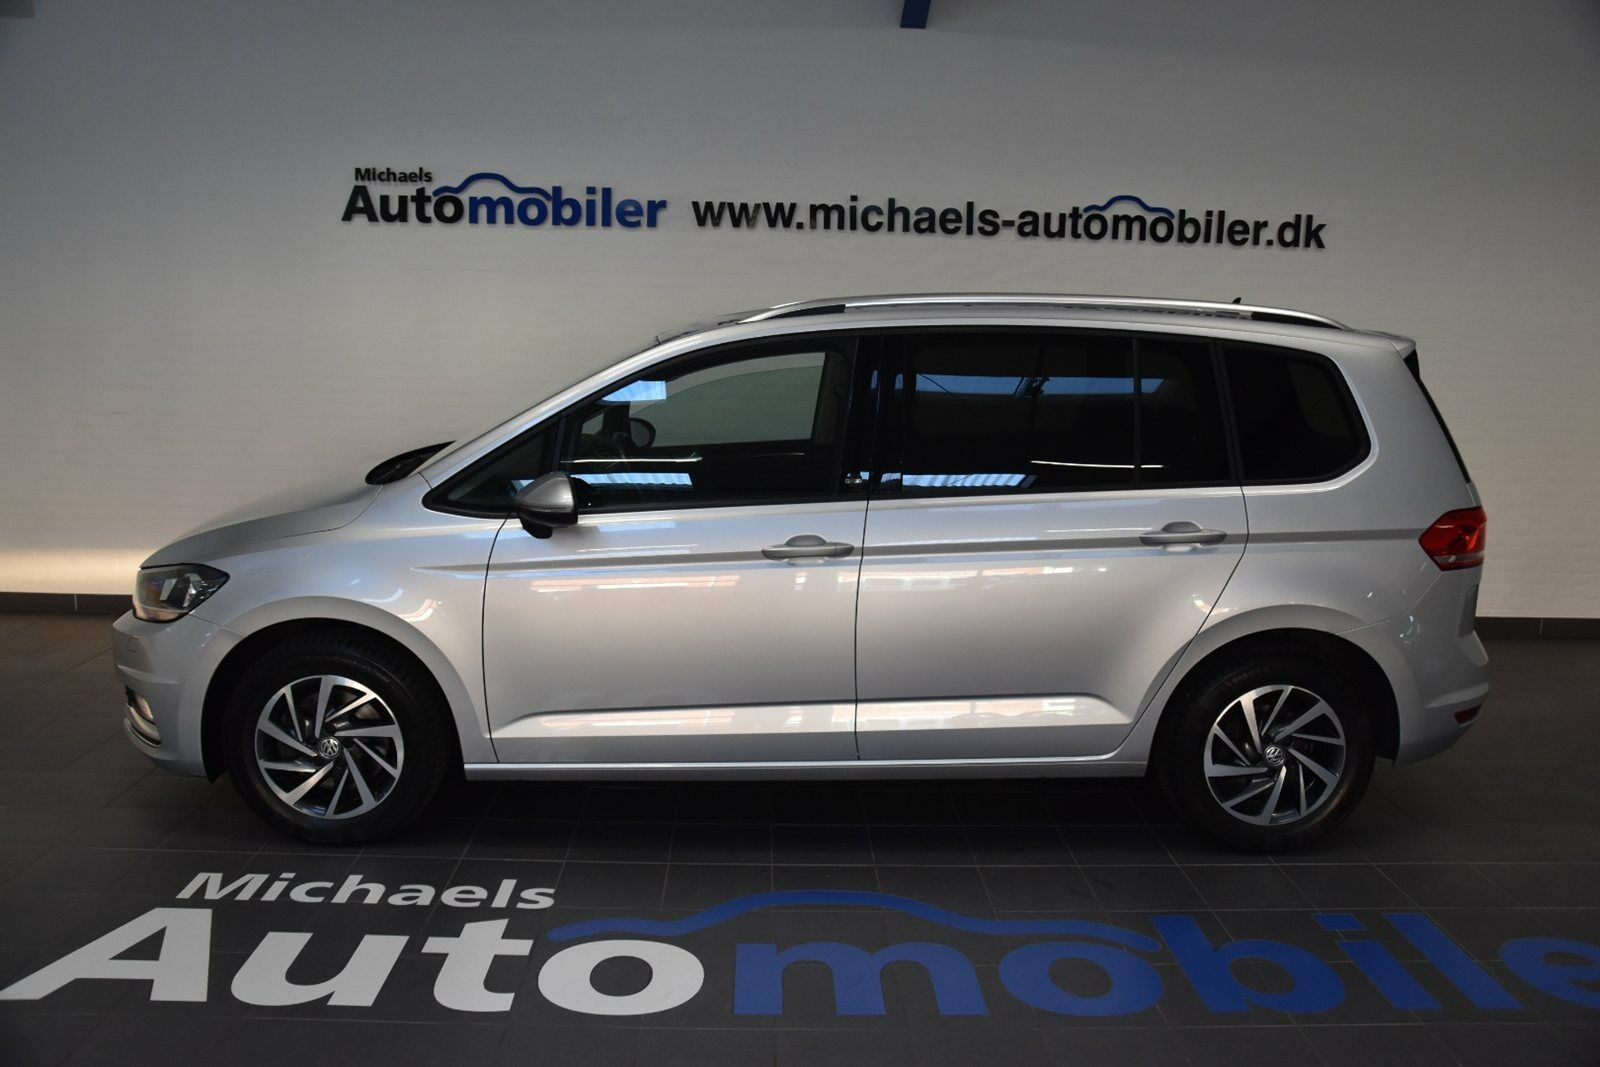 VW Touran 2,0 TDi 150 Sound DSG BMT 5d - 379.900 kr.